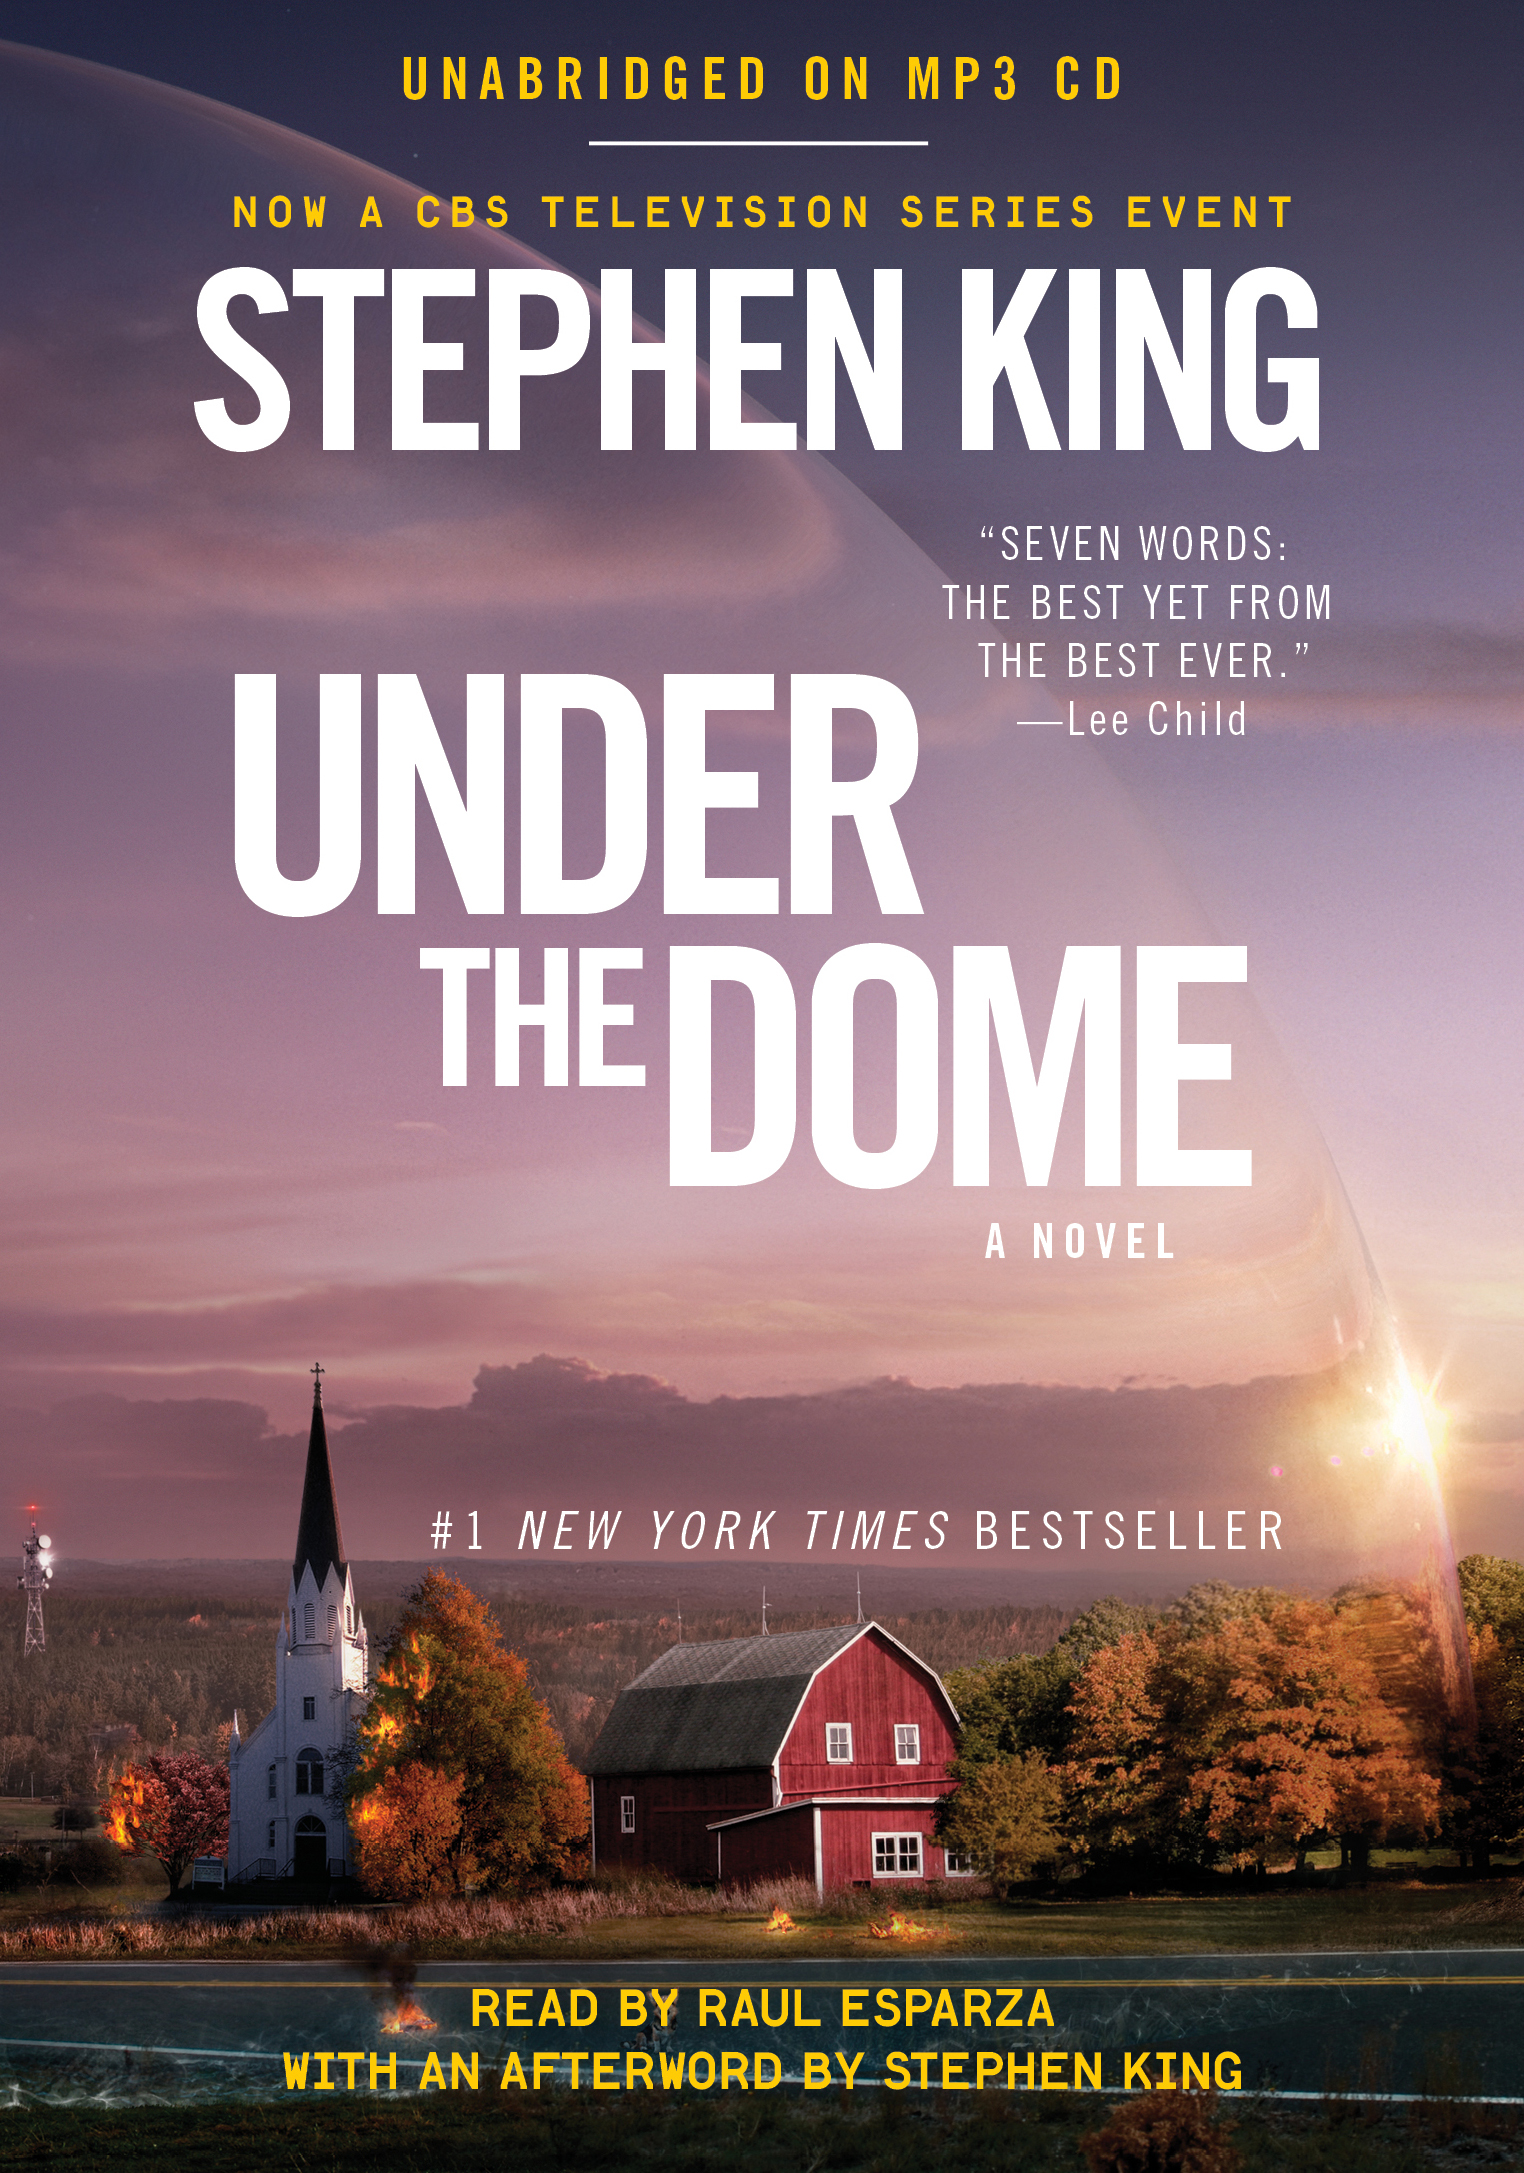 Under the dome 9781442365490 hr